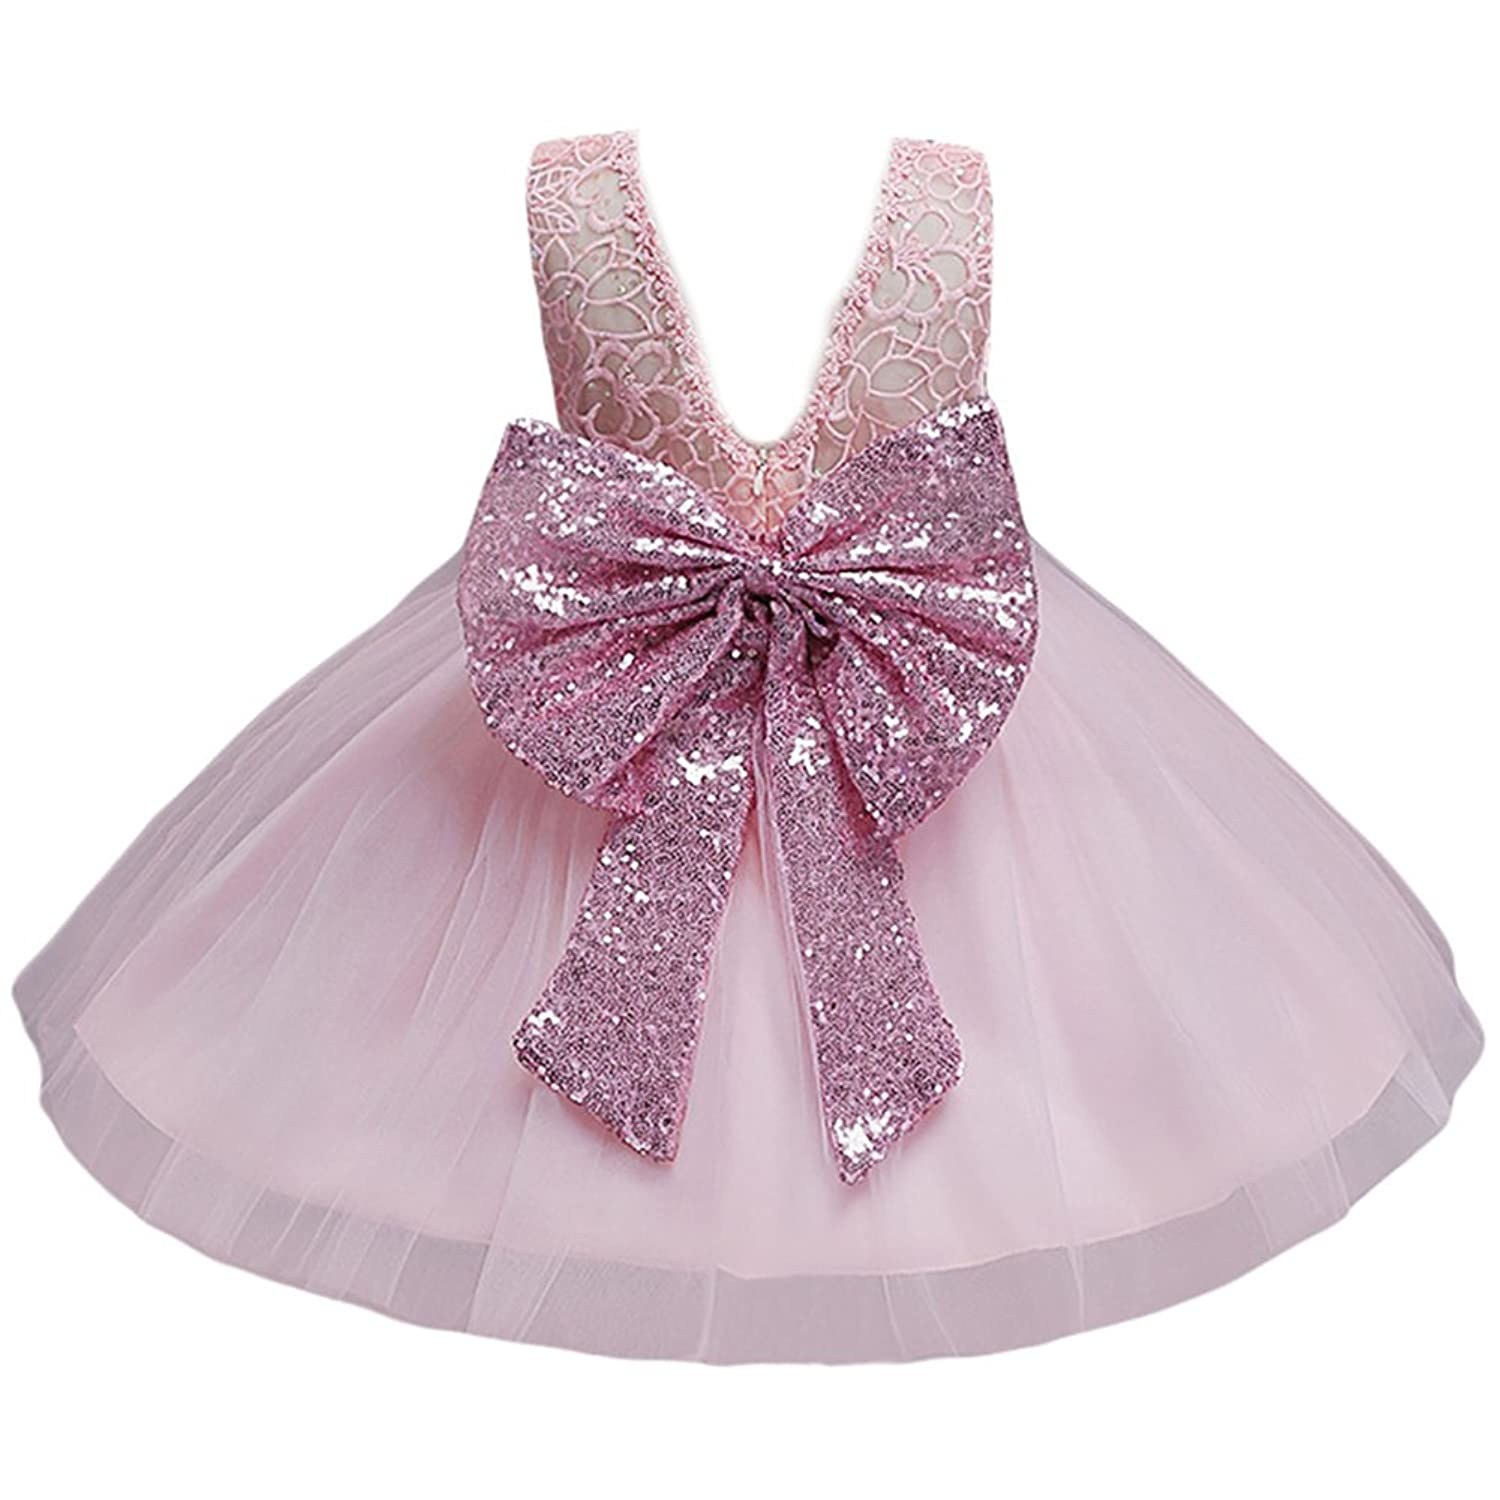 4ccc1cce7 Baby Girl Lace Mesh Tutu Dress Sequin Bow Toddler Princess Gown